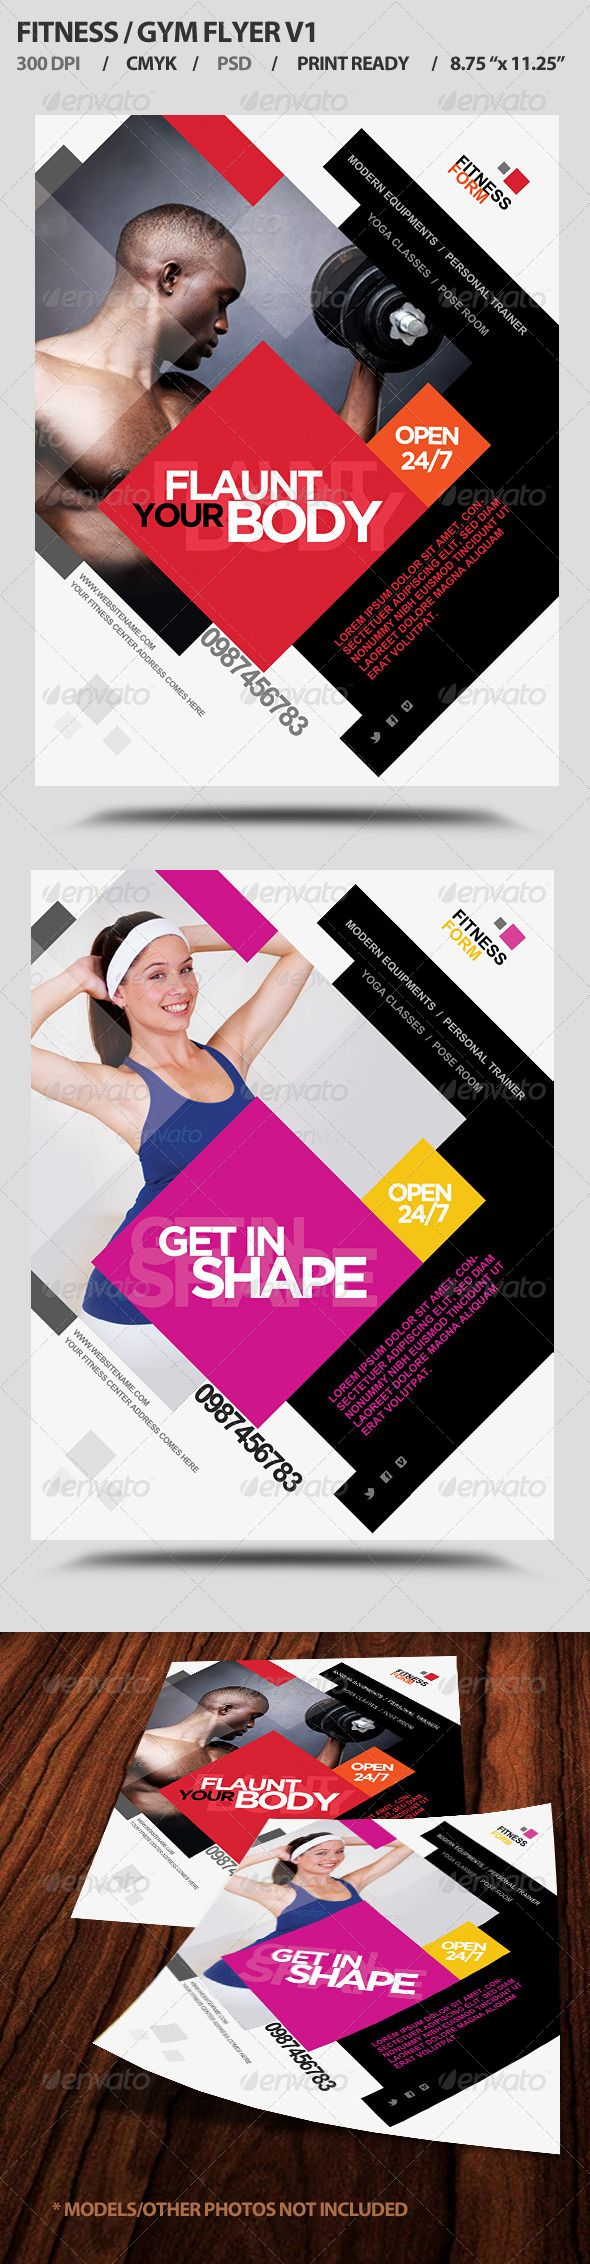 FitnessGym Business Promotion Flyer V  Promotional Flyers